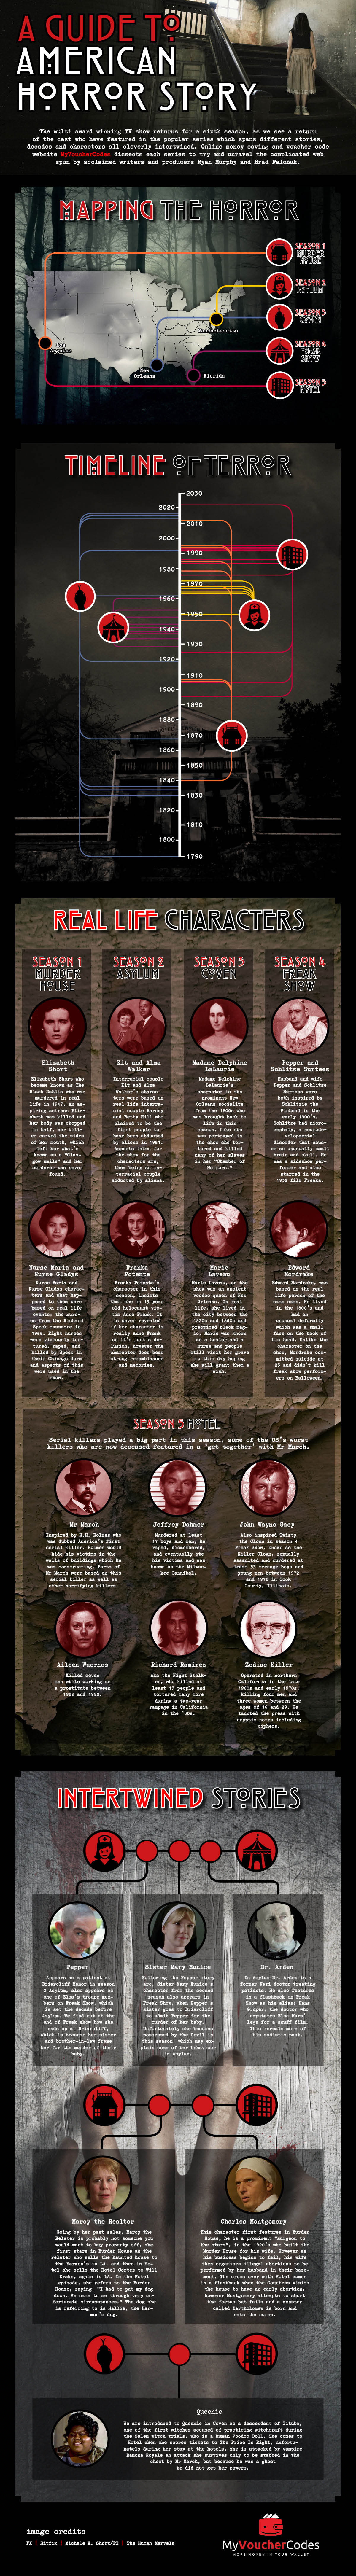 history of American Horror Story